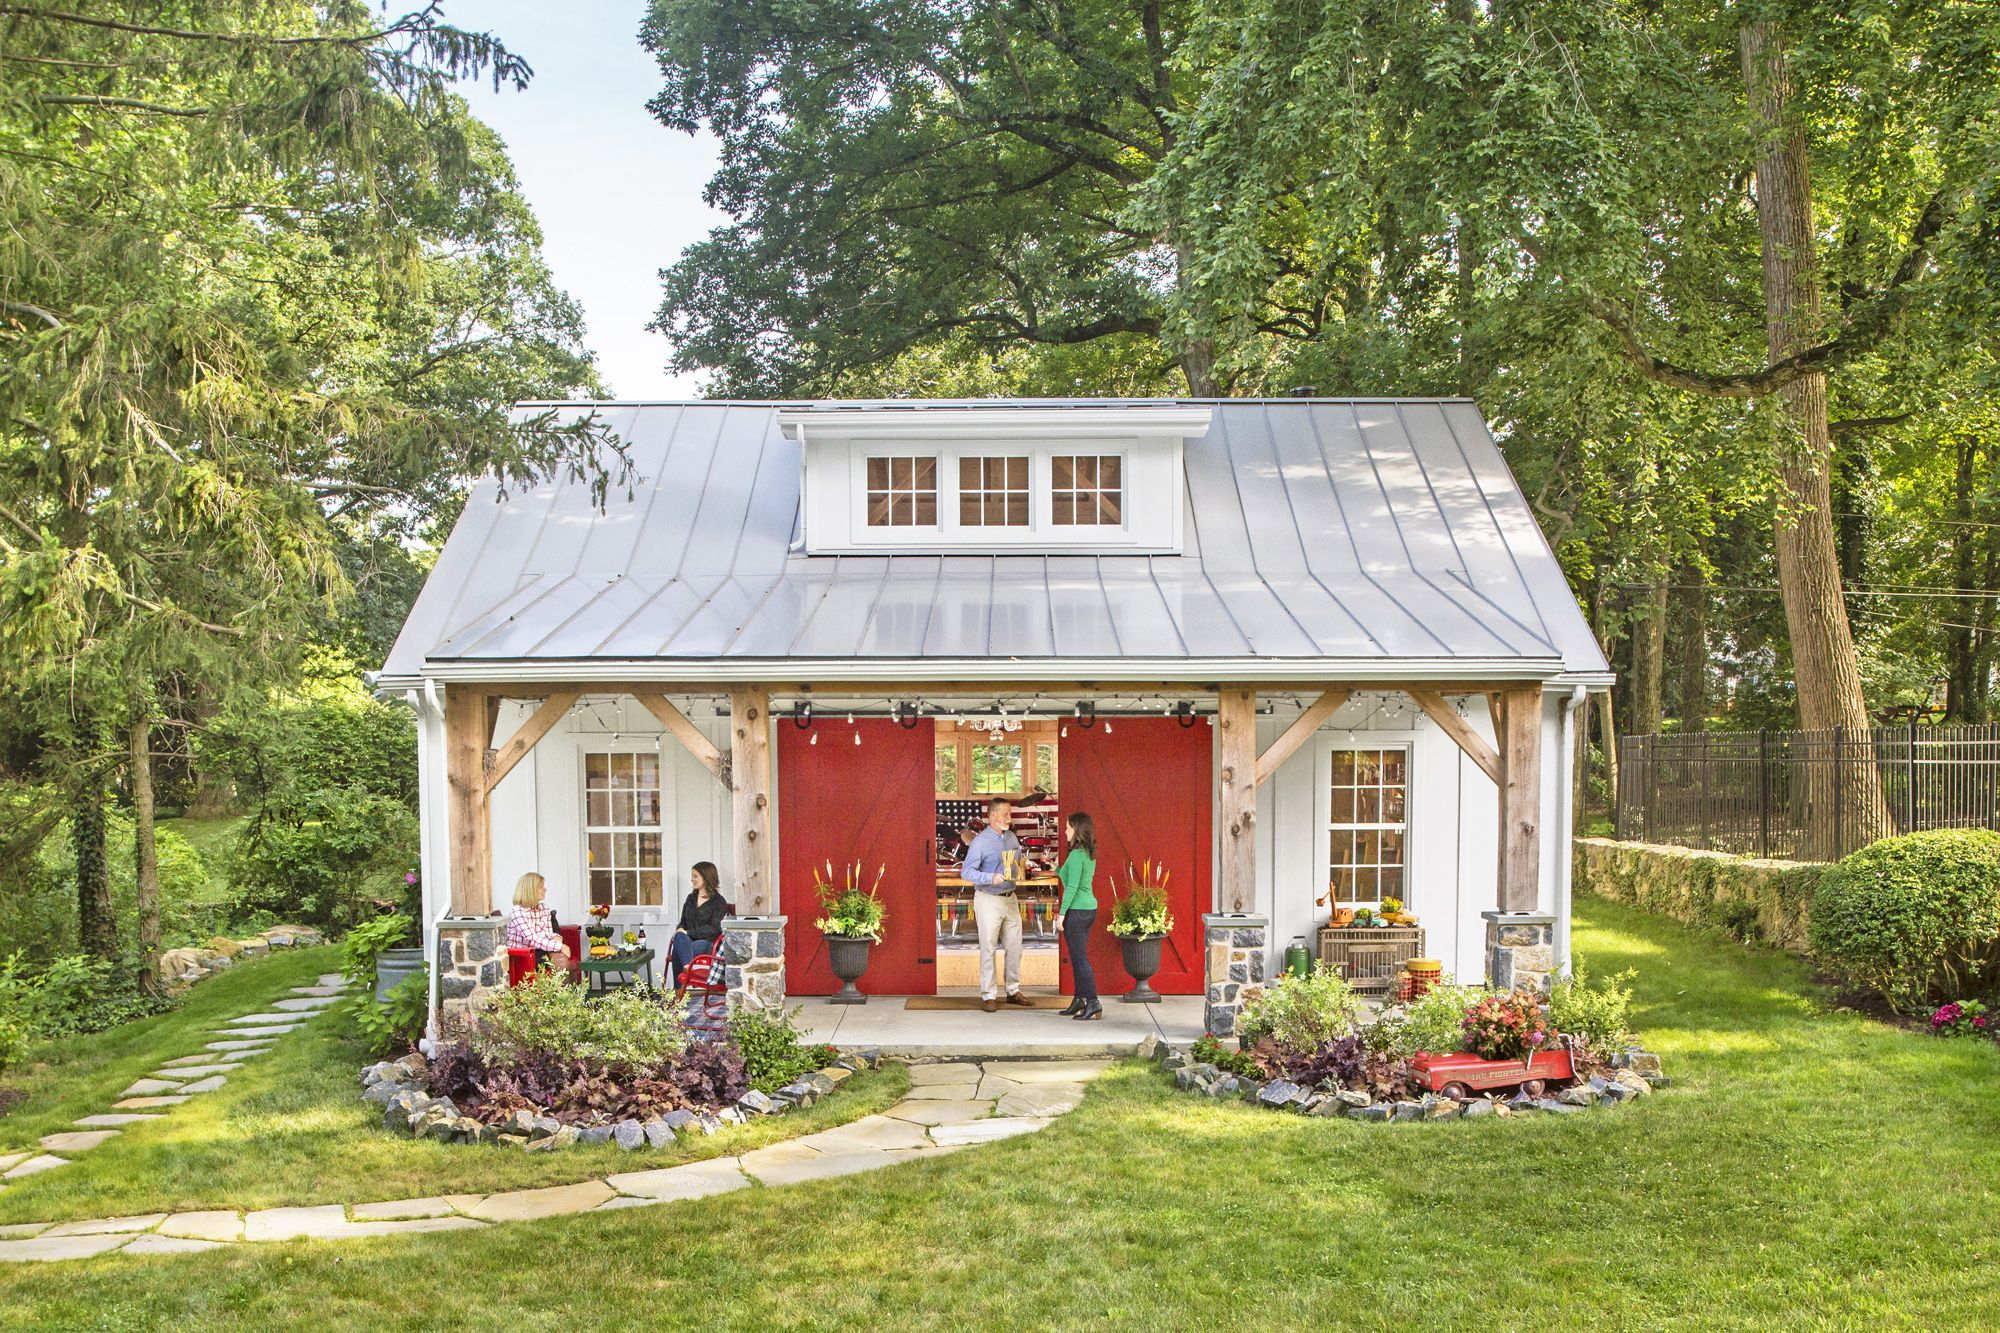 Take A Peek Inside This Party Barn Designed For Hosting Epic Backyard Bashes